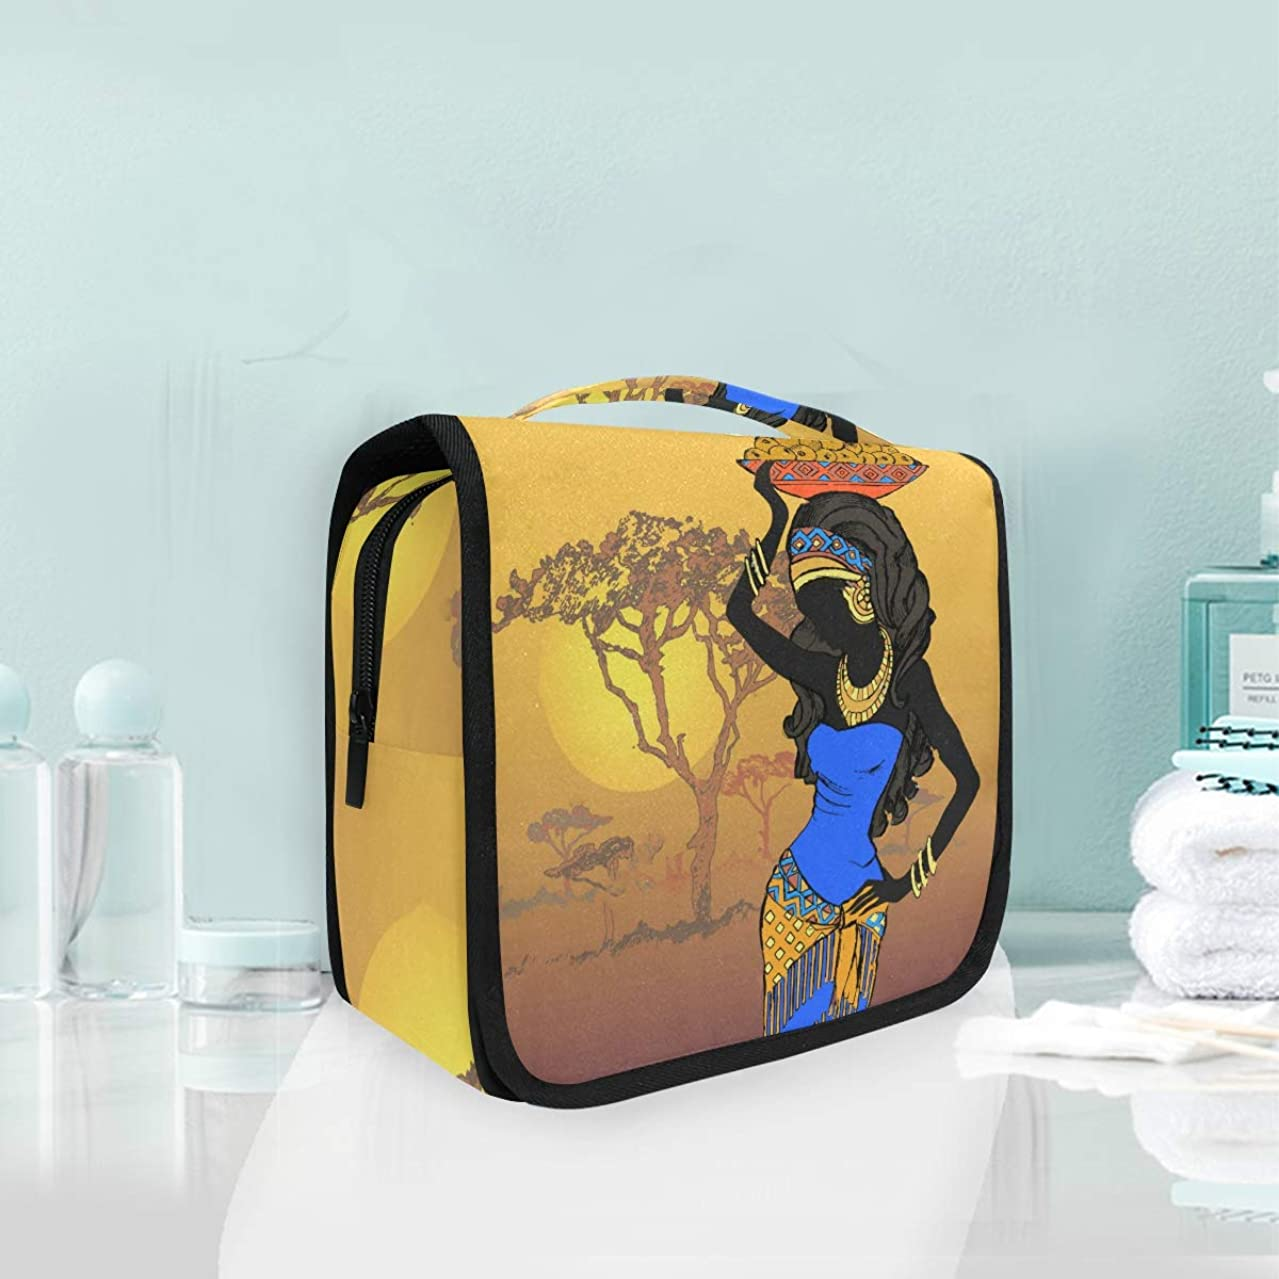 SLHFPX African Woman Toiletry Bag Multifunction Cosmetic Bag Portable Makeup Pouch Waterproof Travel Hanging Organizer Bag for Women Men Girls